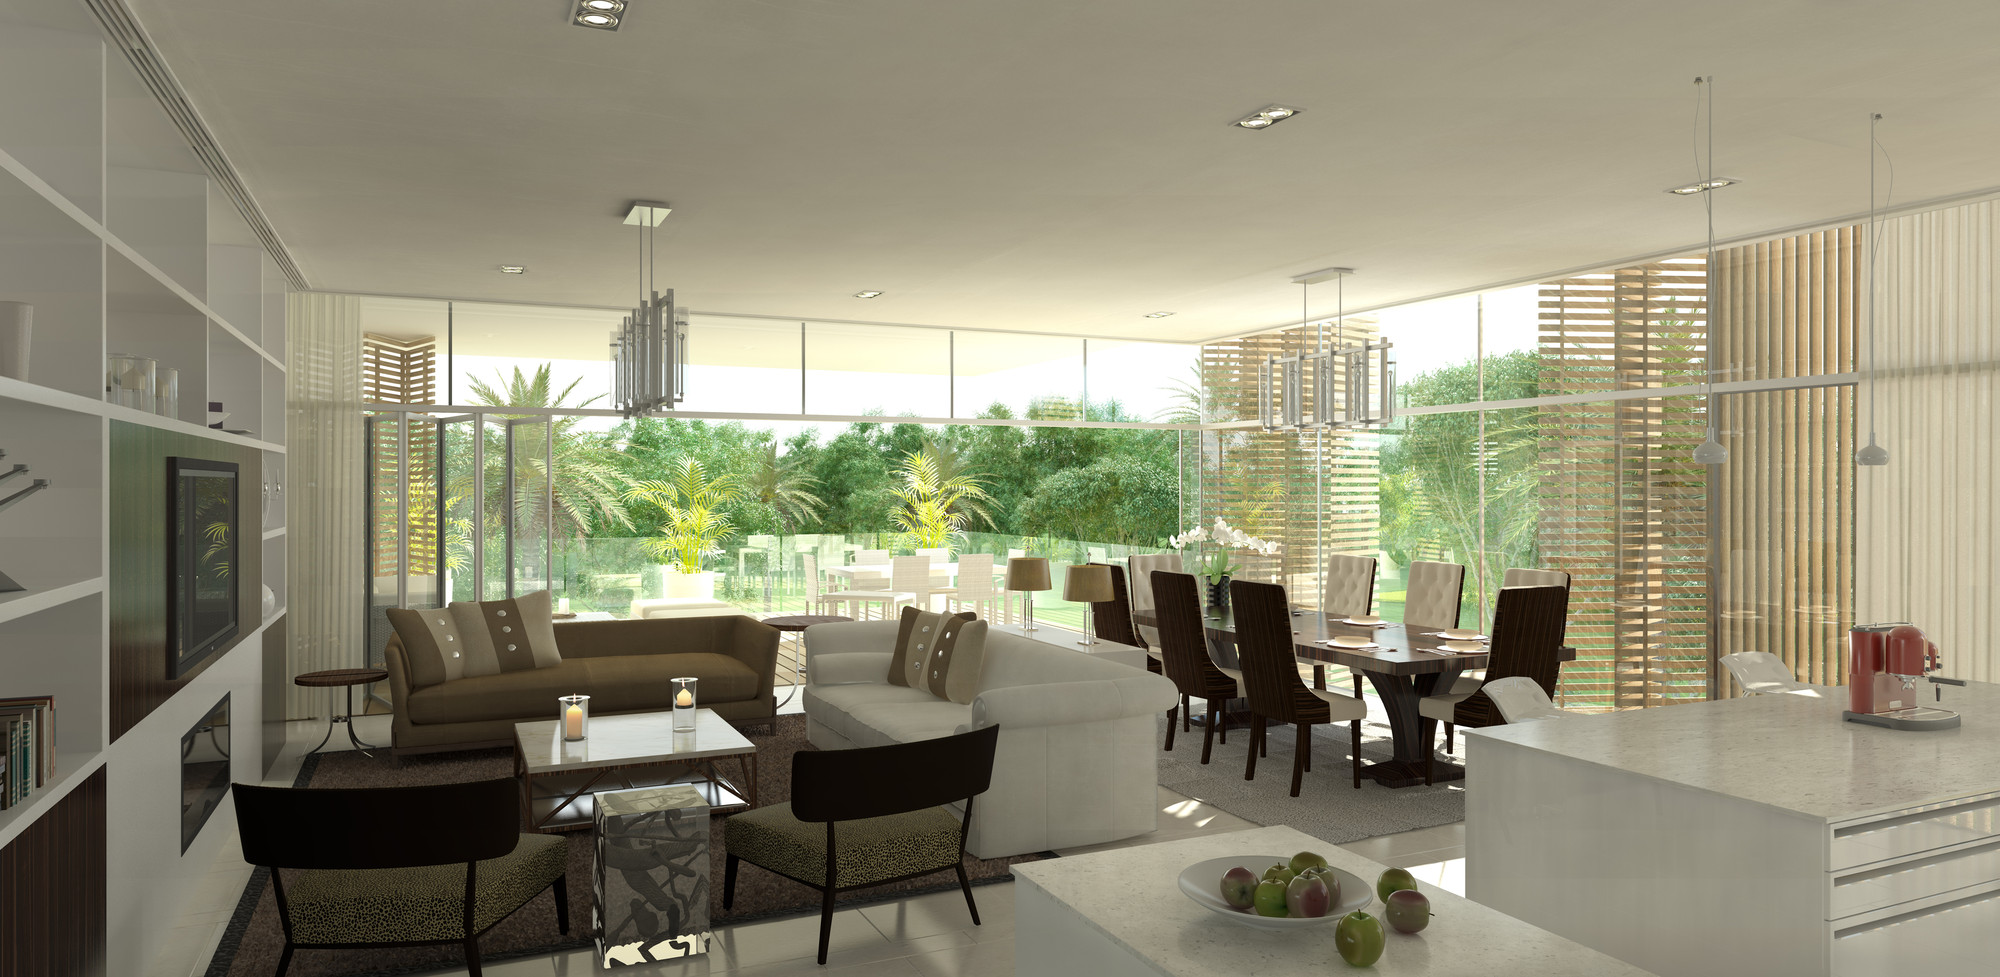 10 DESIGN's Ashjar at Al Barari residential project. Image Courtesy of 10  DESIGN